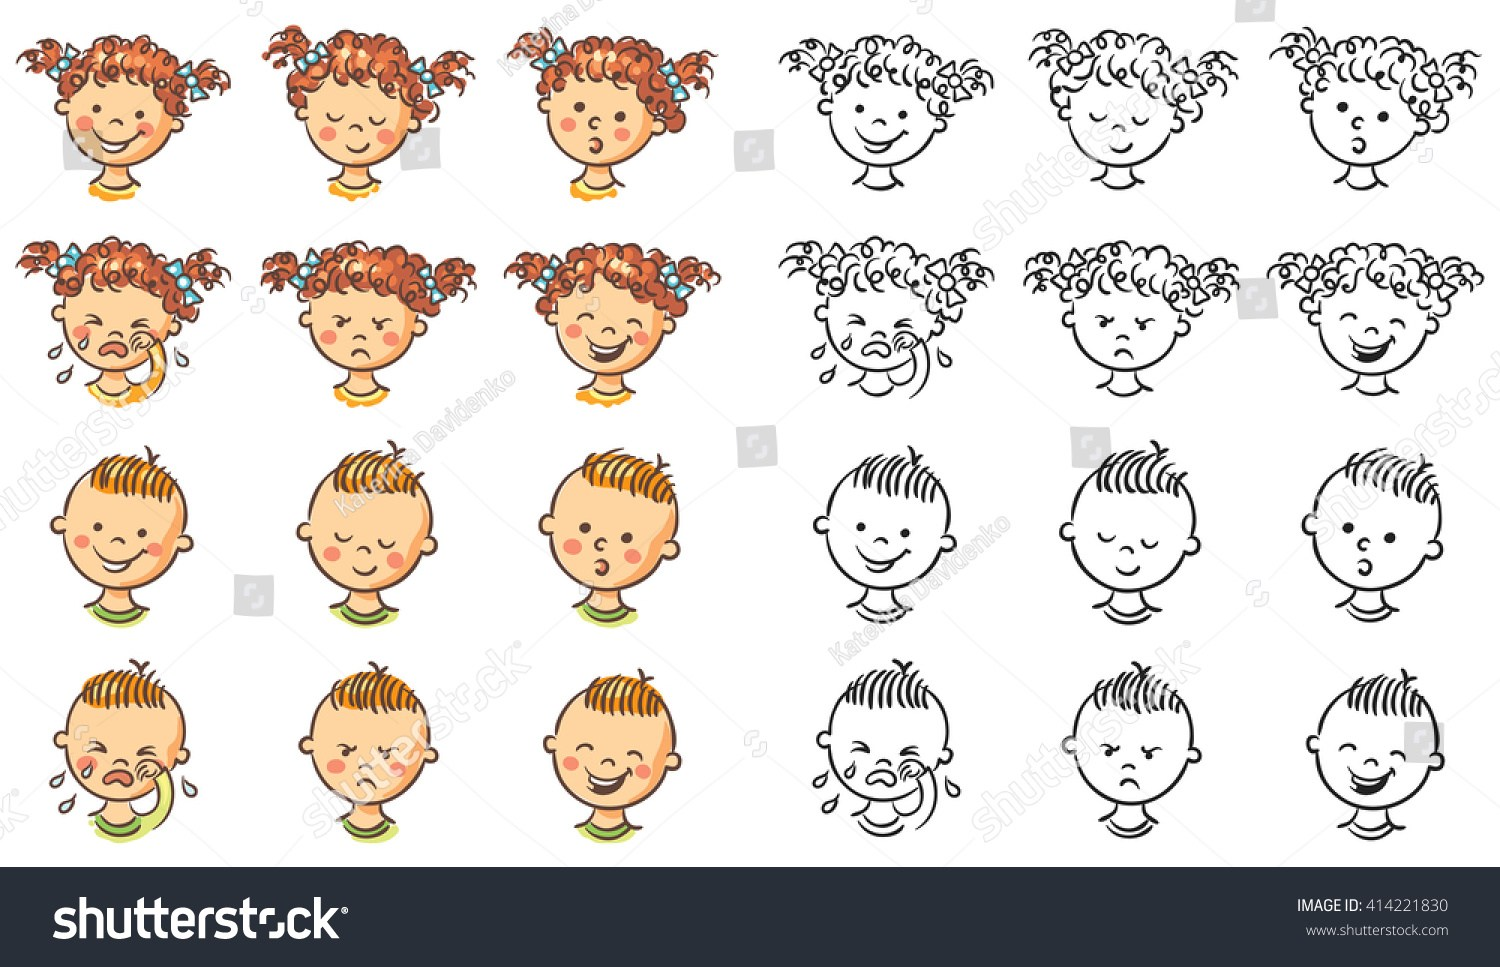 Emotions clipart black and white banner freeuse download Emotion clipart black and white 3 » Clipart Portal banner freeuse download